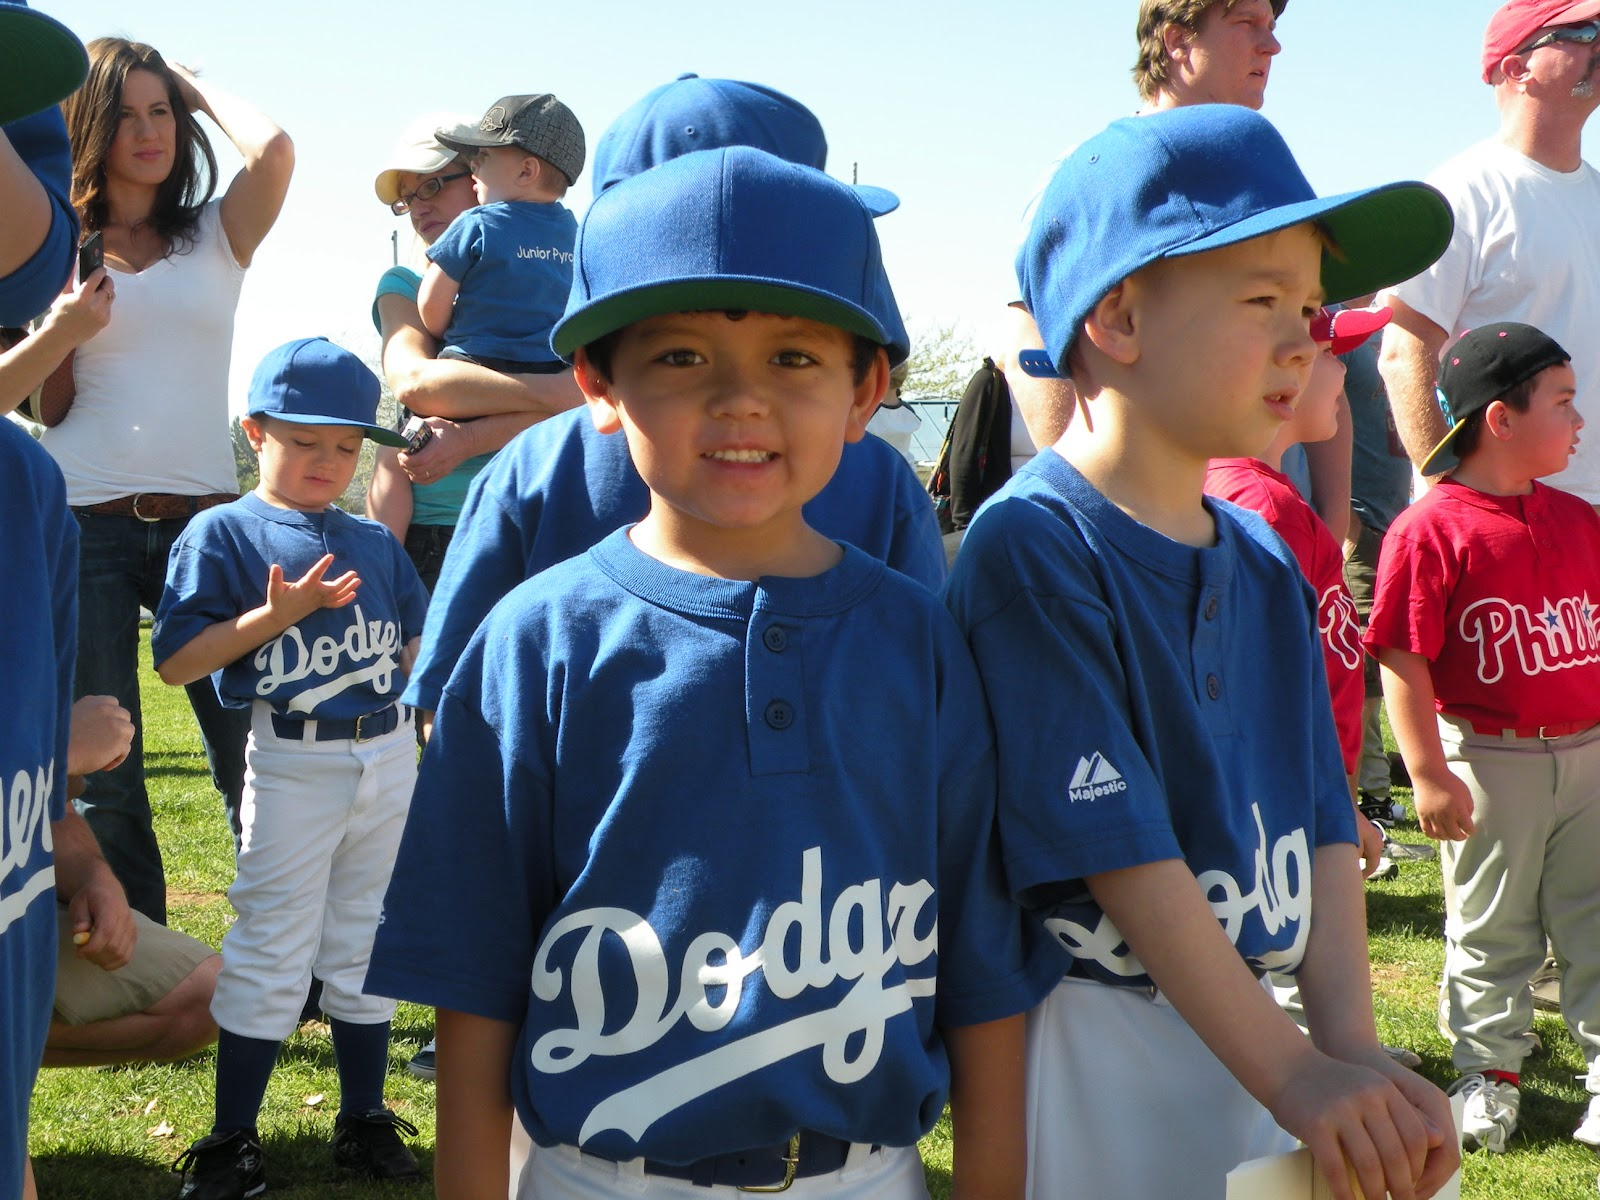 summer ritual of little league baseball in full swing Once a player is chosen for a senior majors team, the player remains on the same team until he reaches babe ruth league age 16 each team has 13 players a minimum of three thirteen year olds must be on each team.